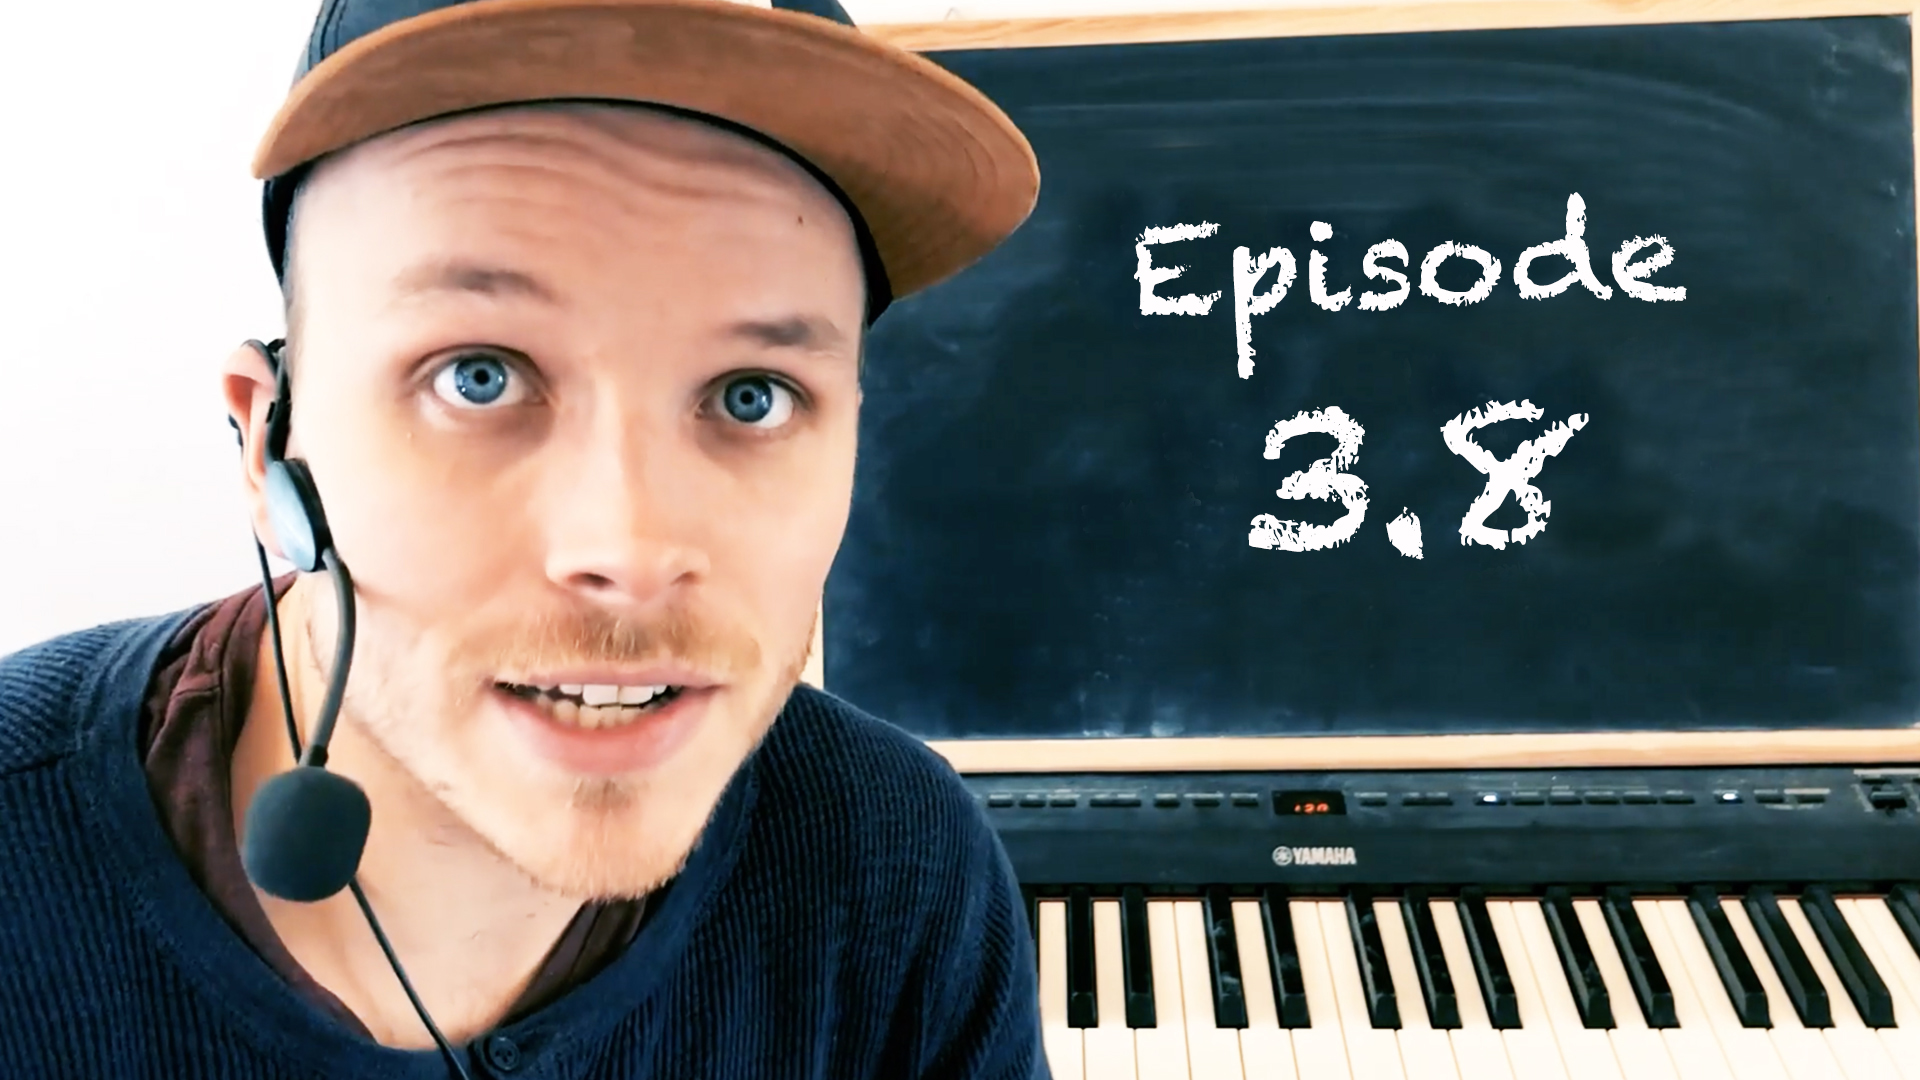 Ep 3. 8 Canon in D on Piano